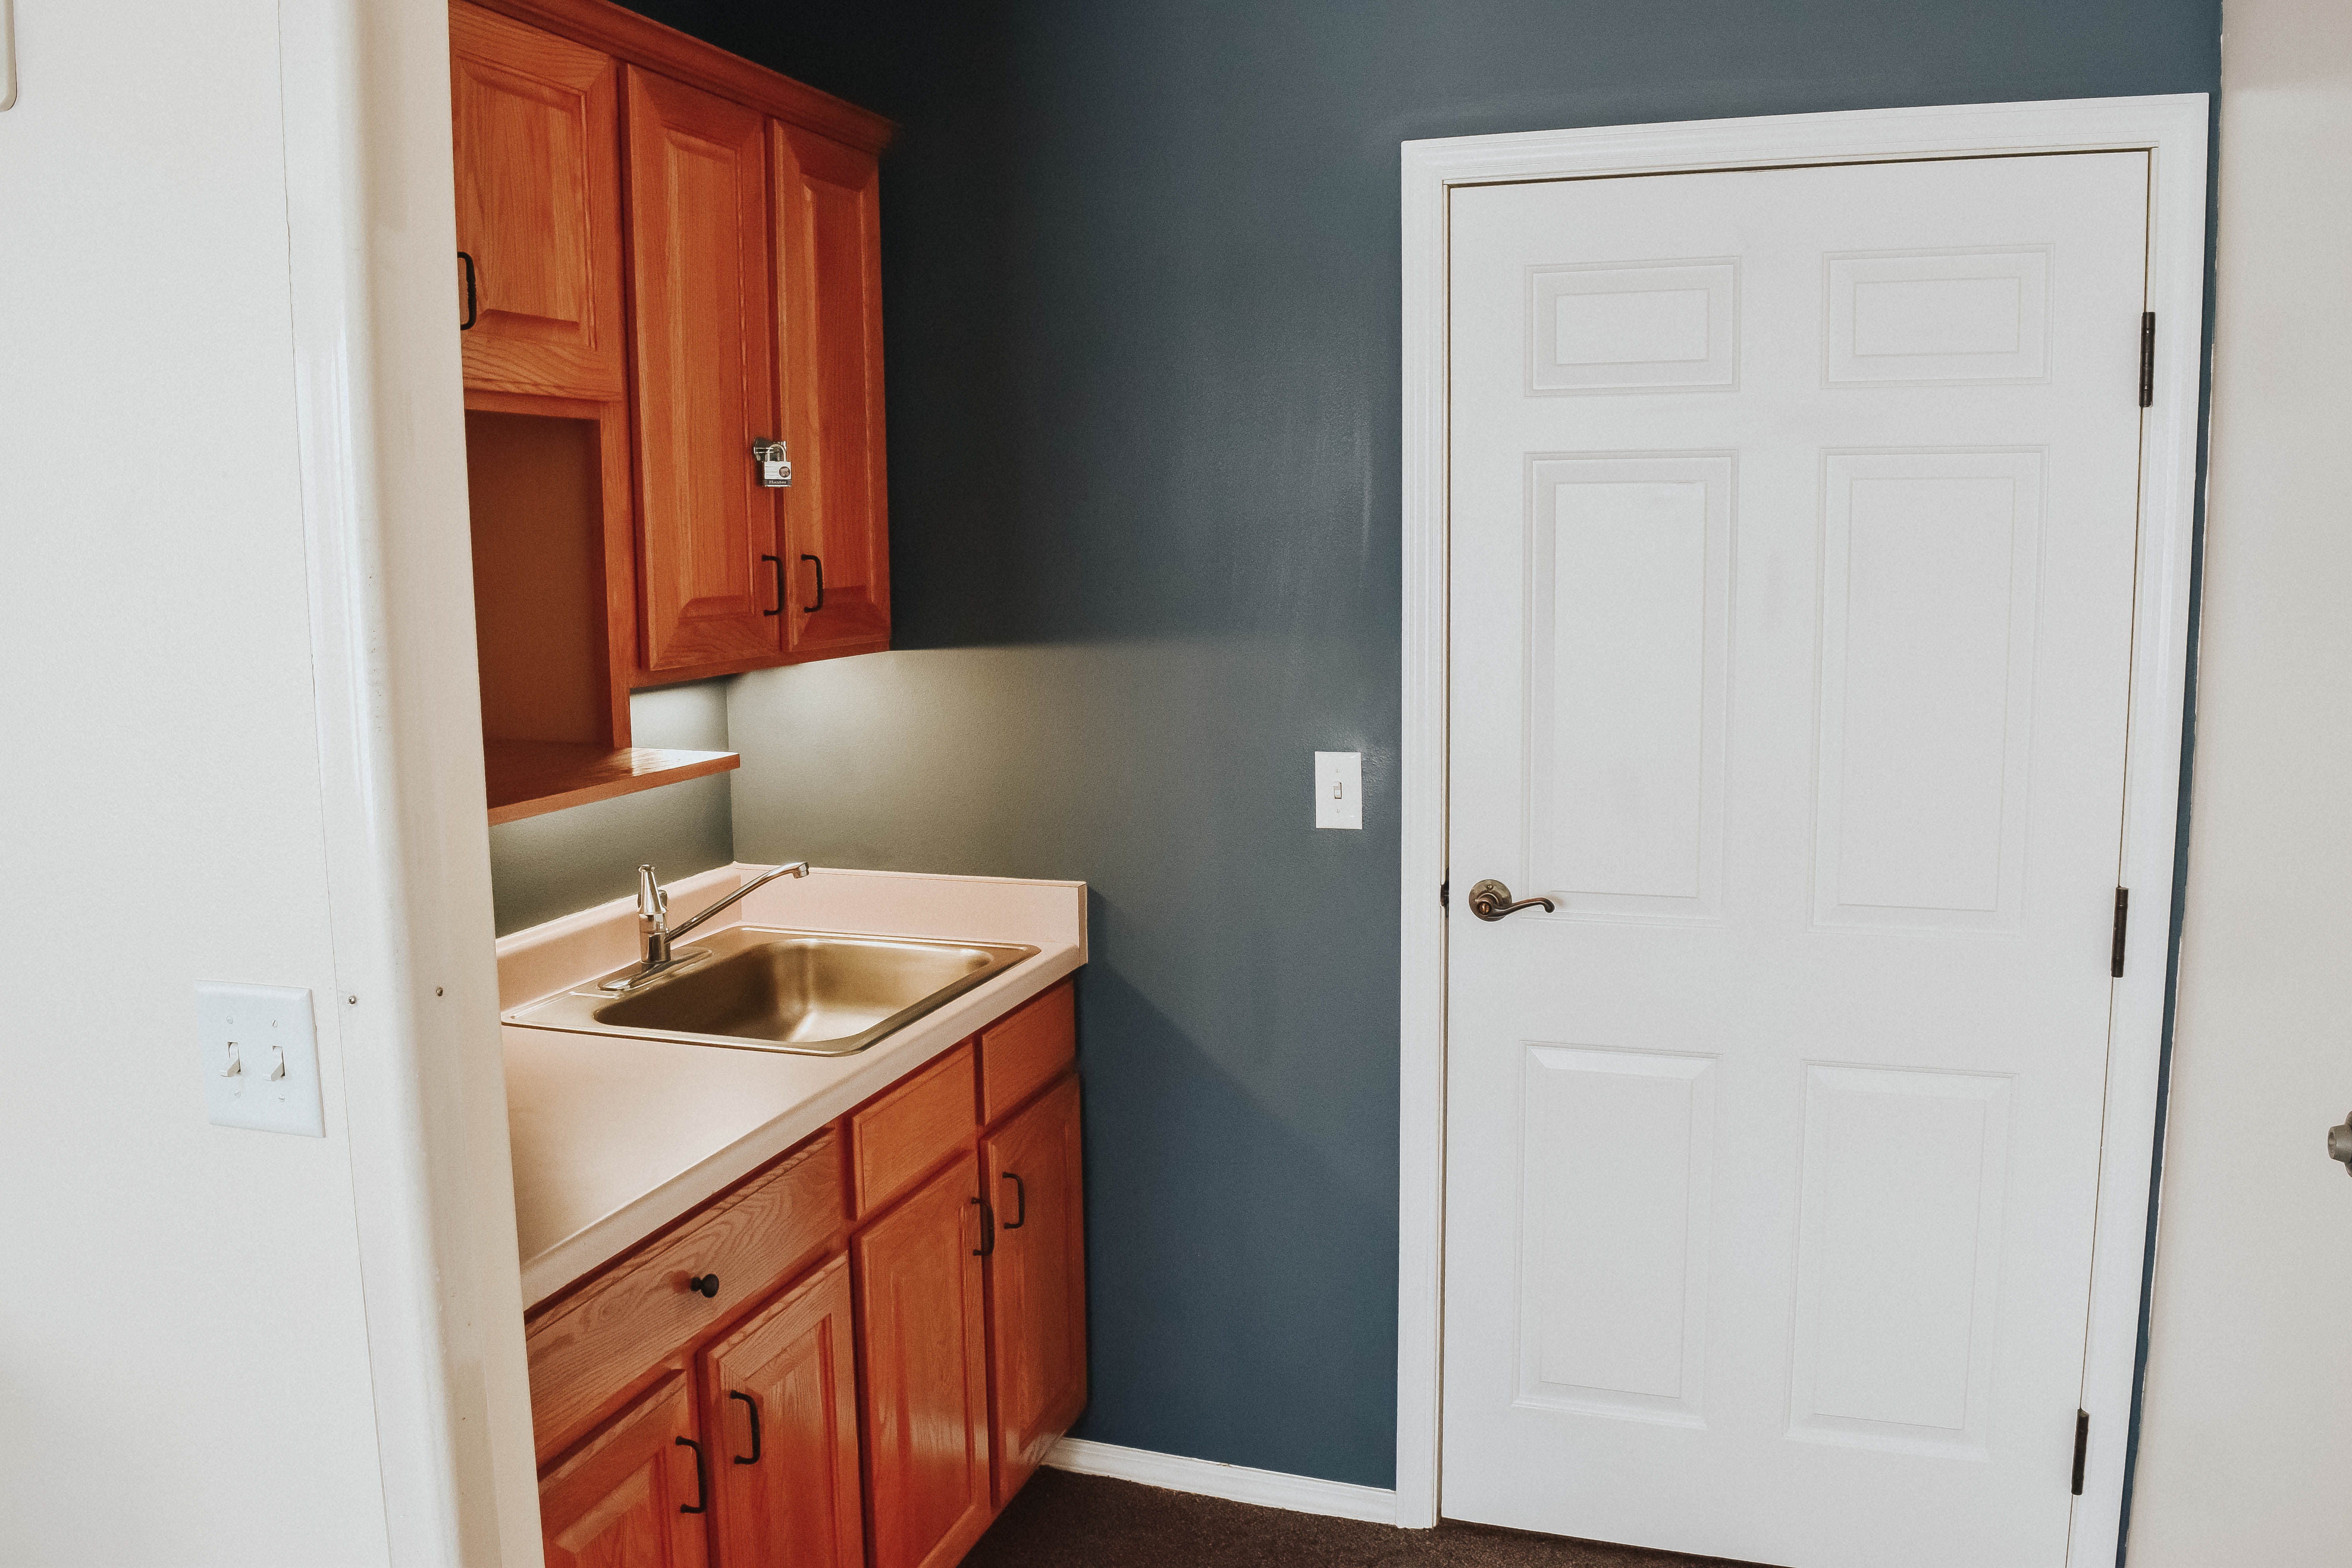 Tambree Meadows Assisted Living Bedroom Kitchenette